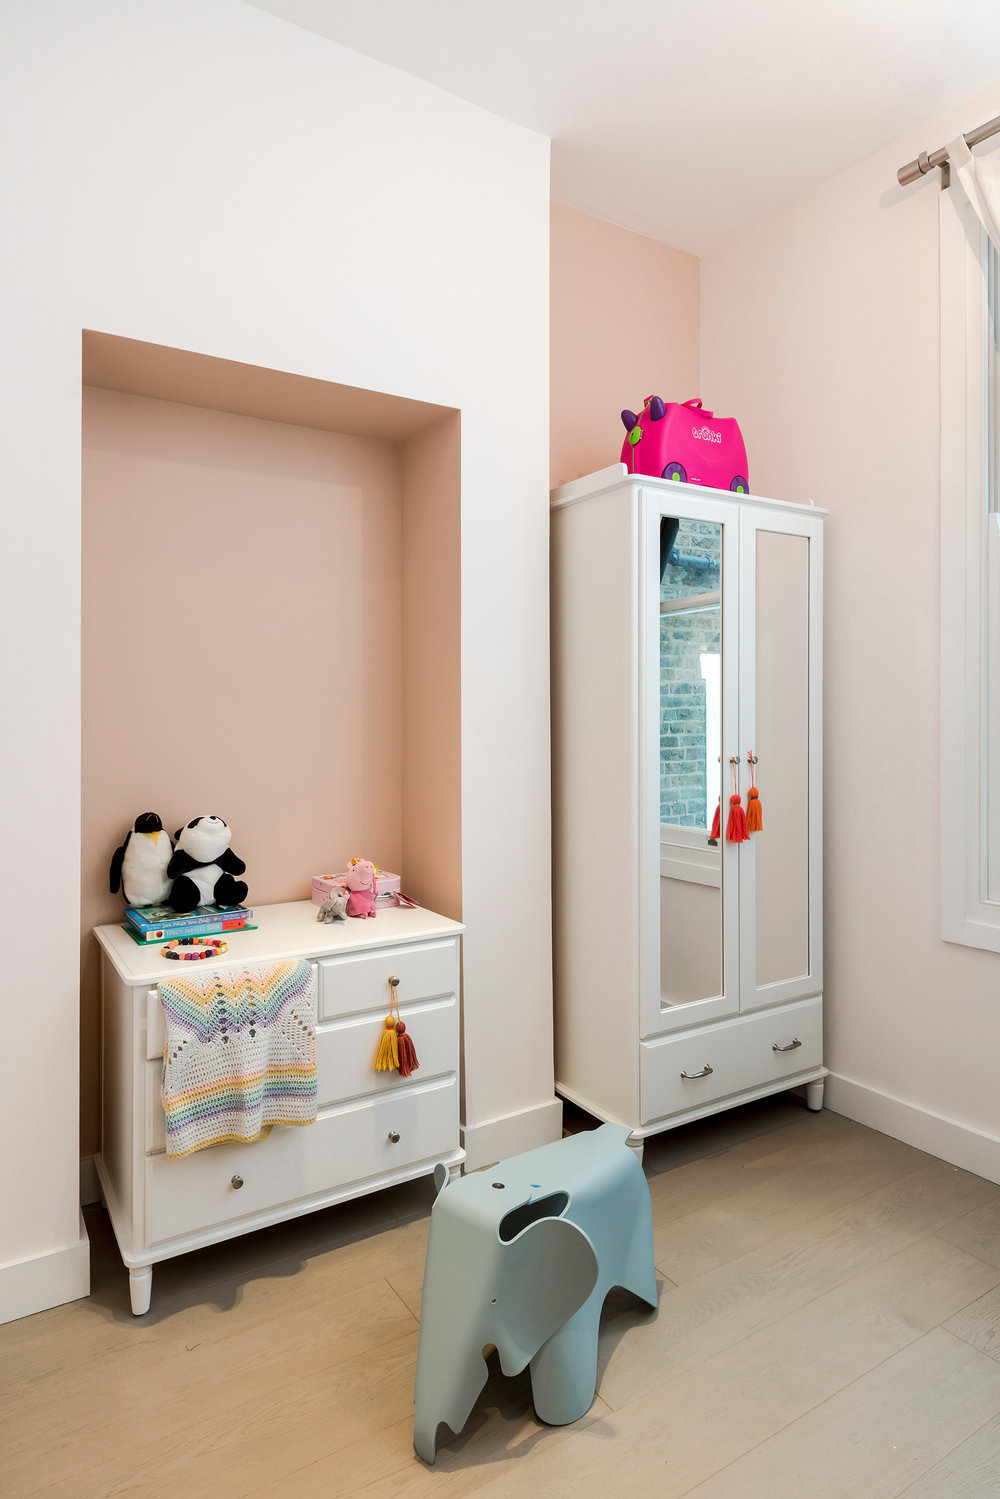 Daughter's bedroom with hues of pink, layout was kept to house the client's existing furniture.